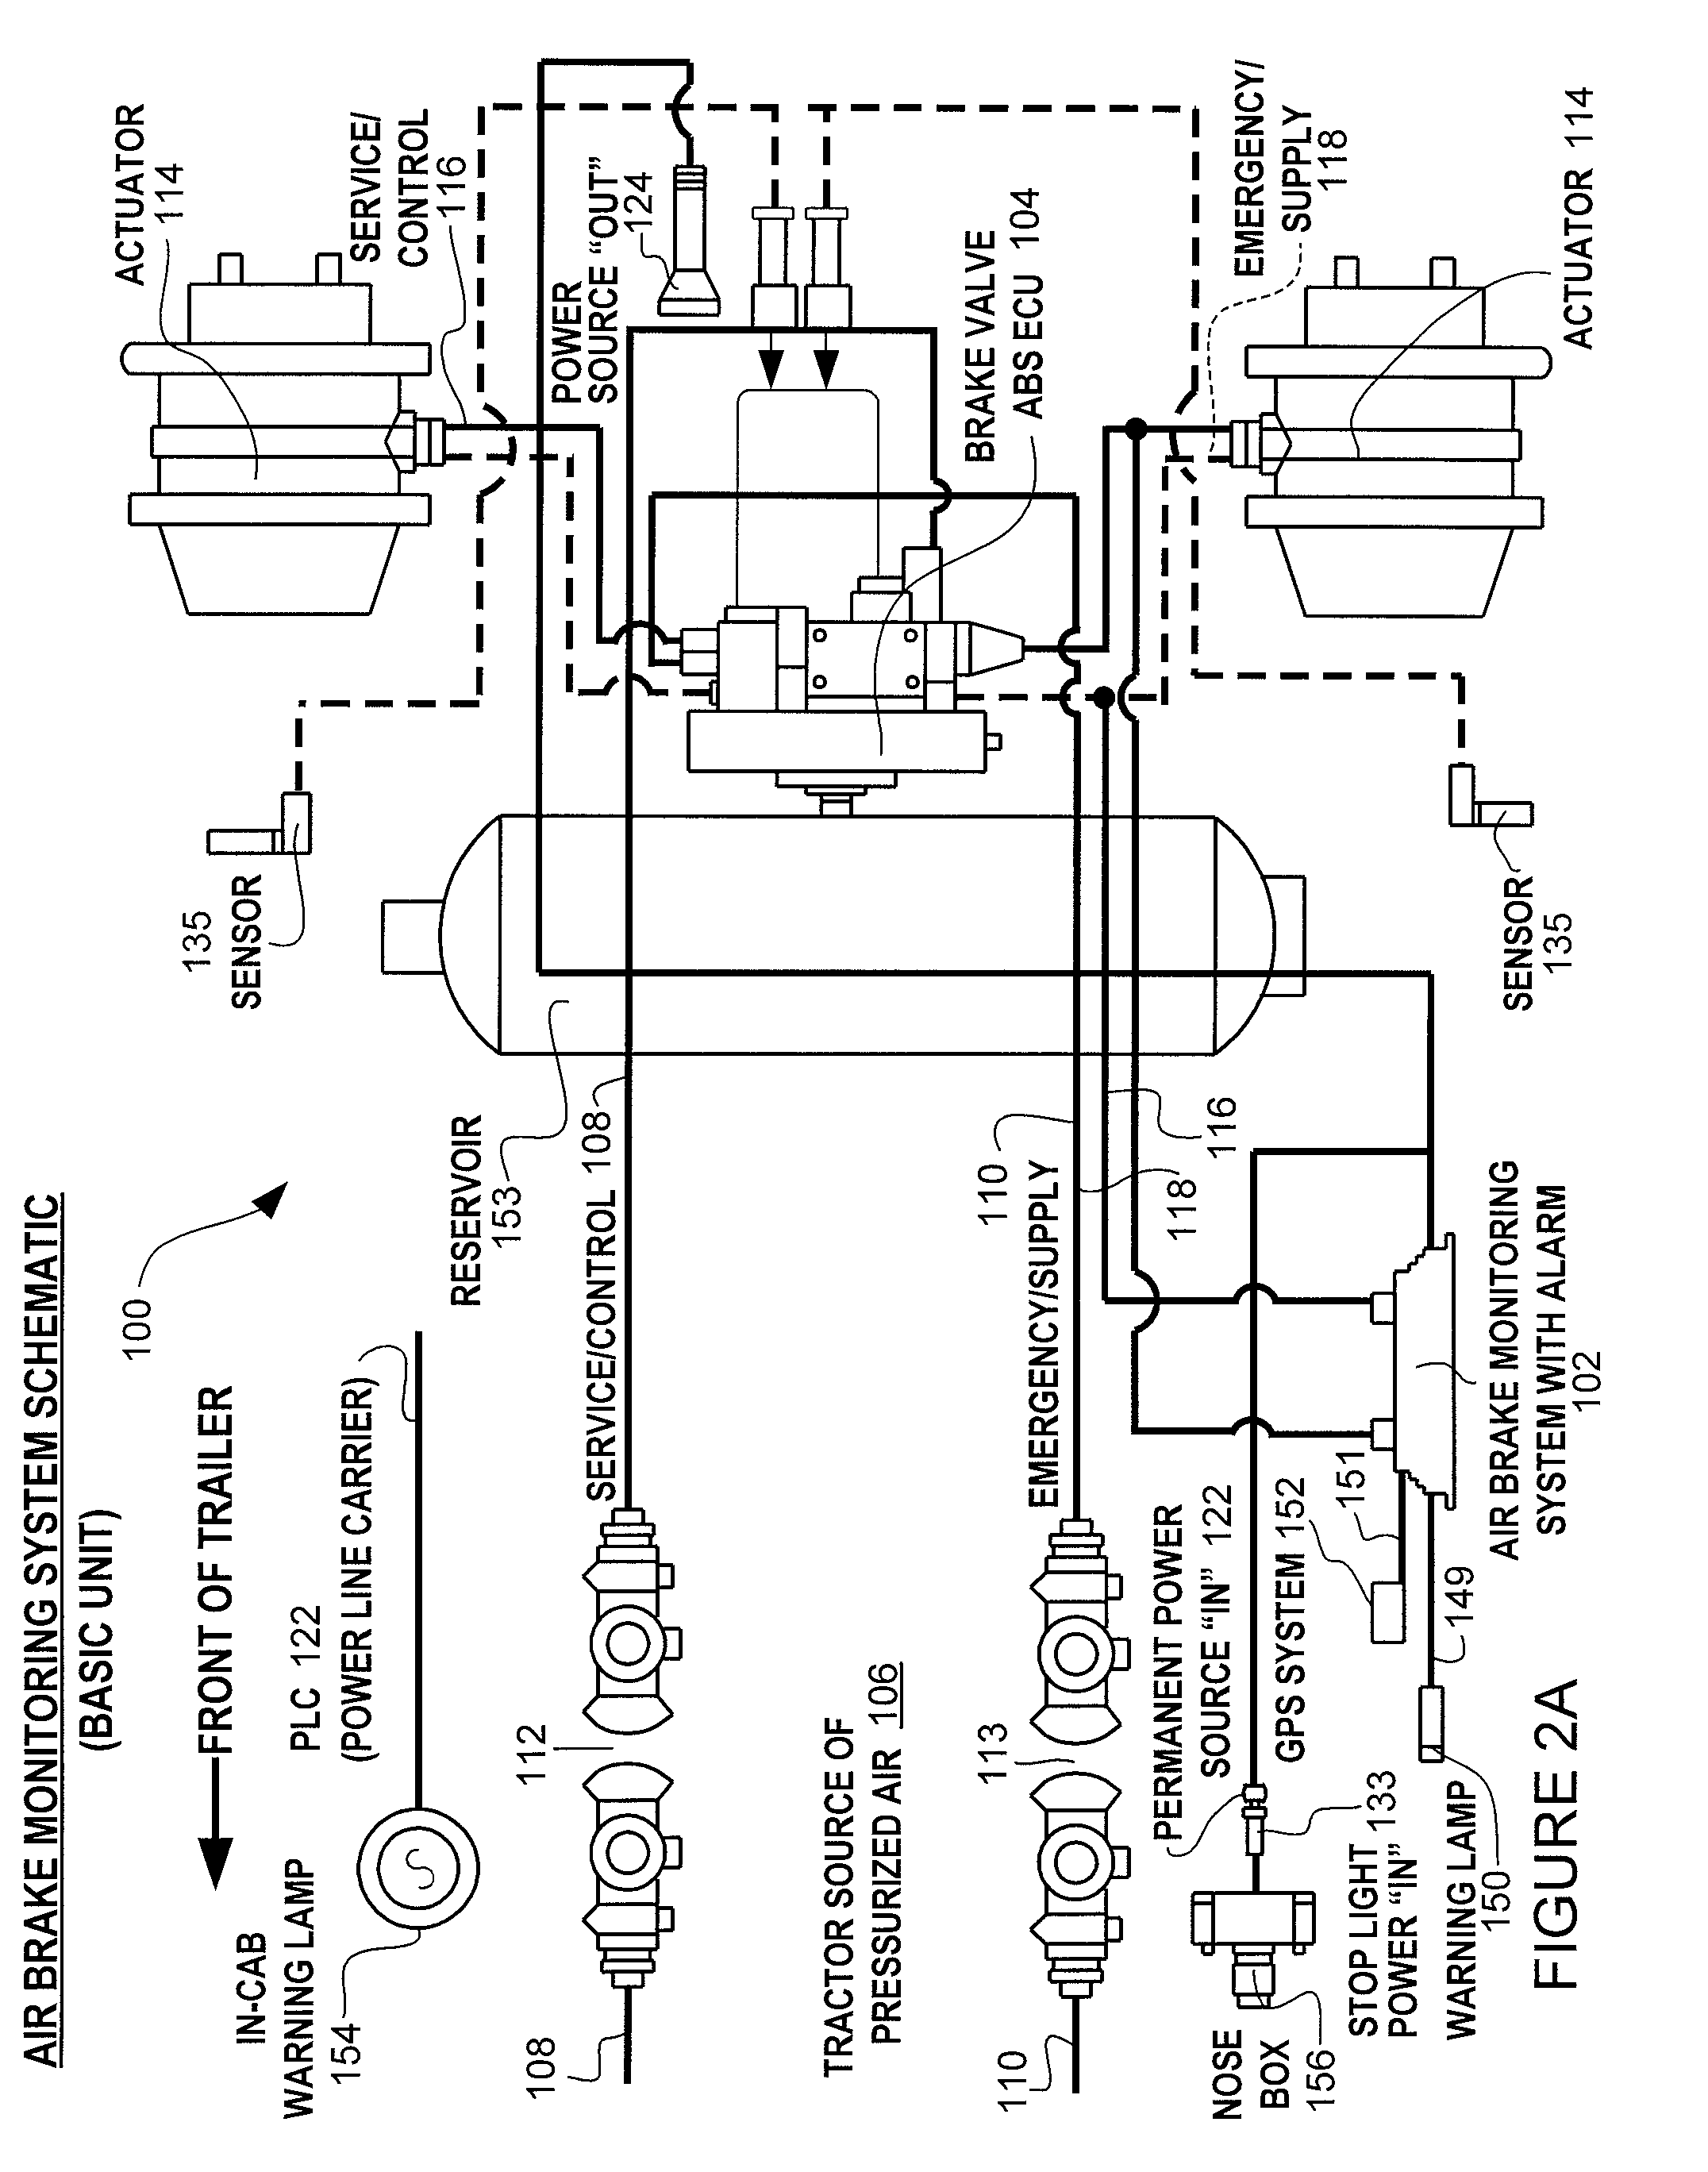 Haldex Abs Trailer Wiring Automotive Diagram 18 Wheeler Patent Us8204668 Brake Monitoring System Google Patents